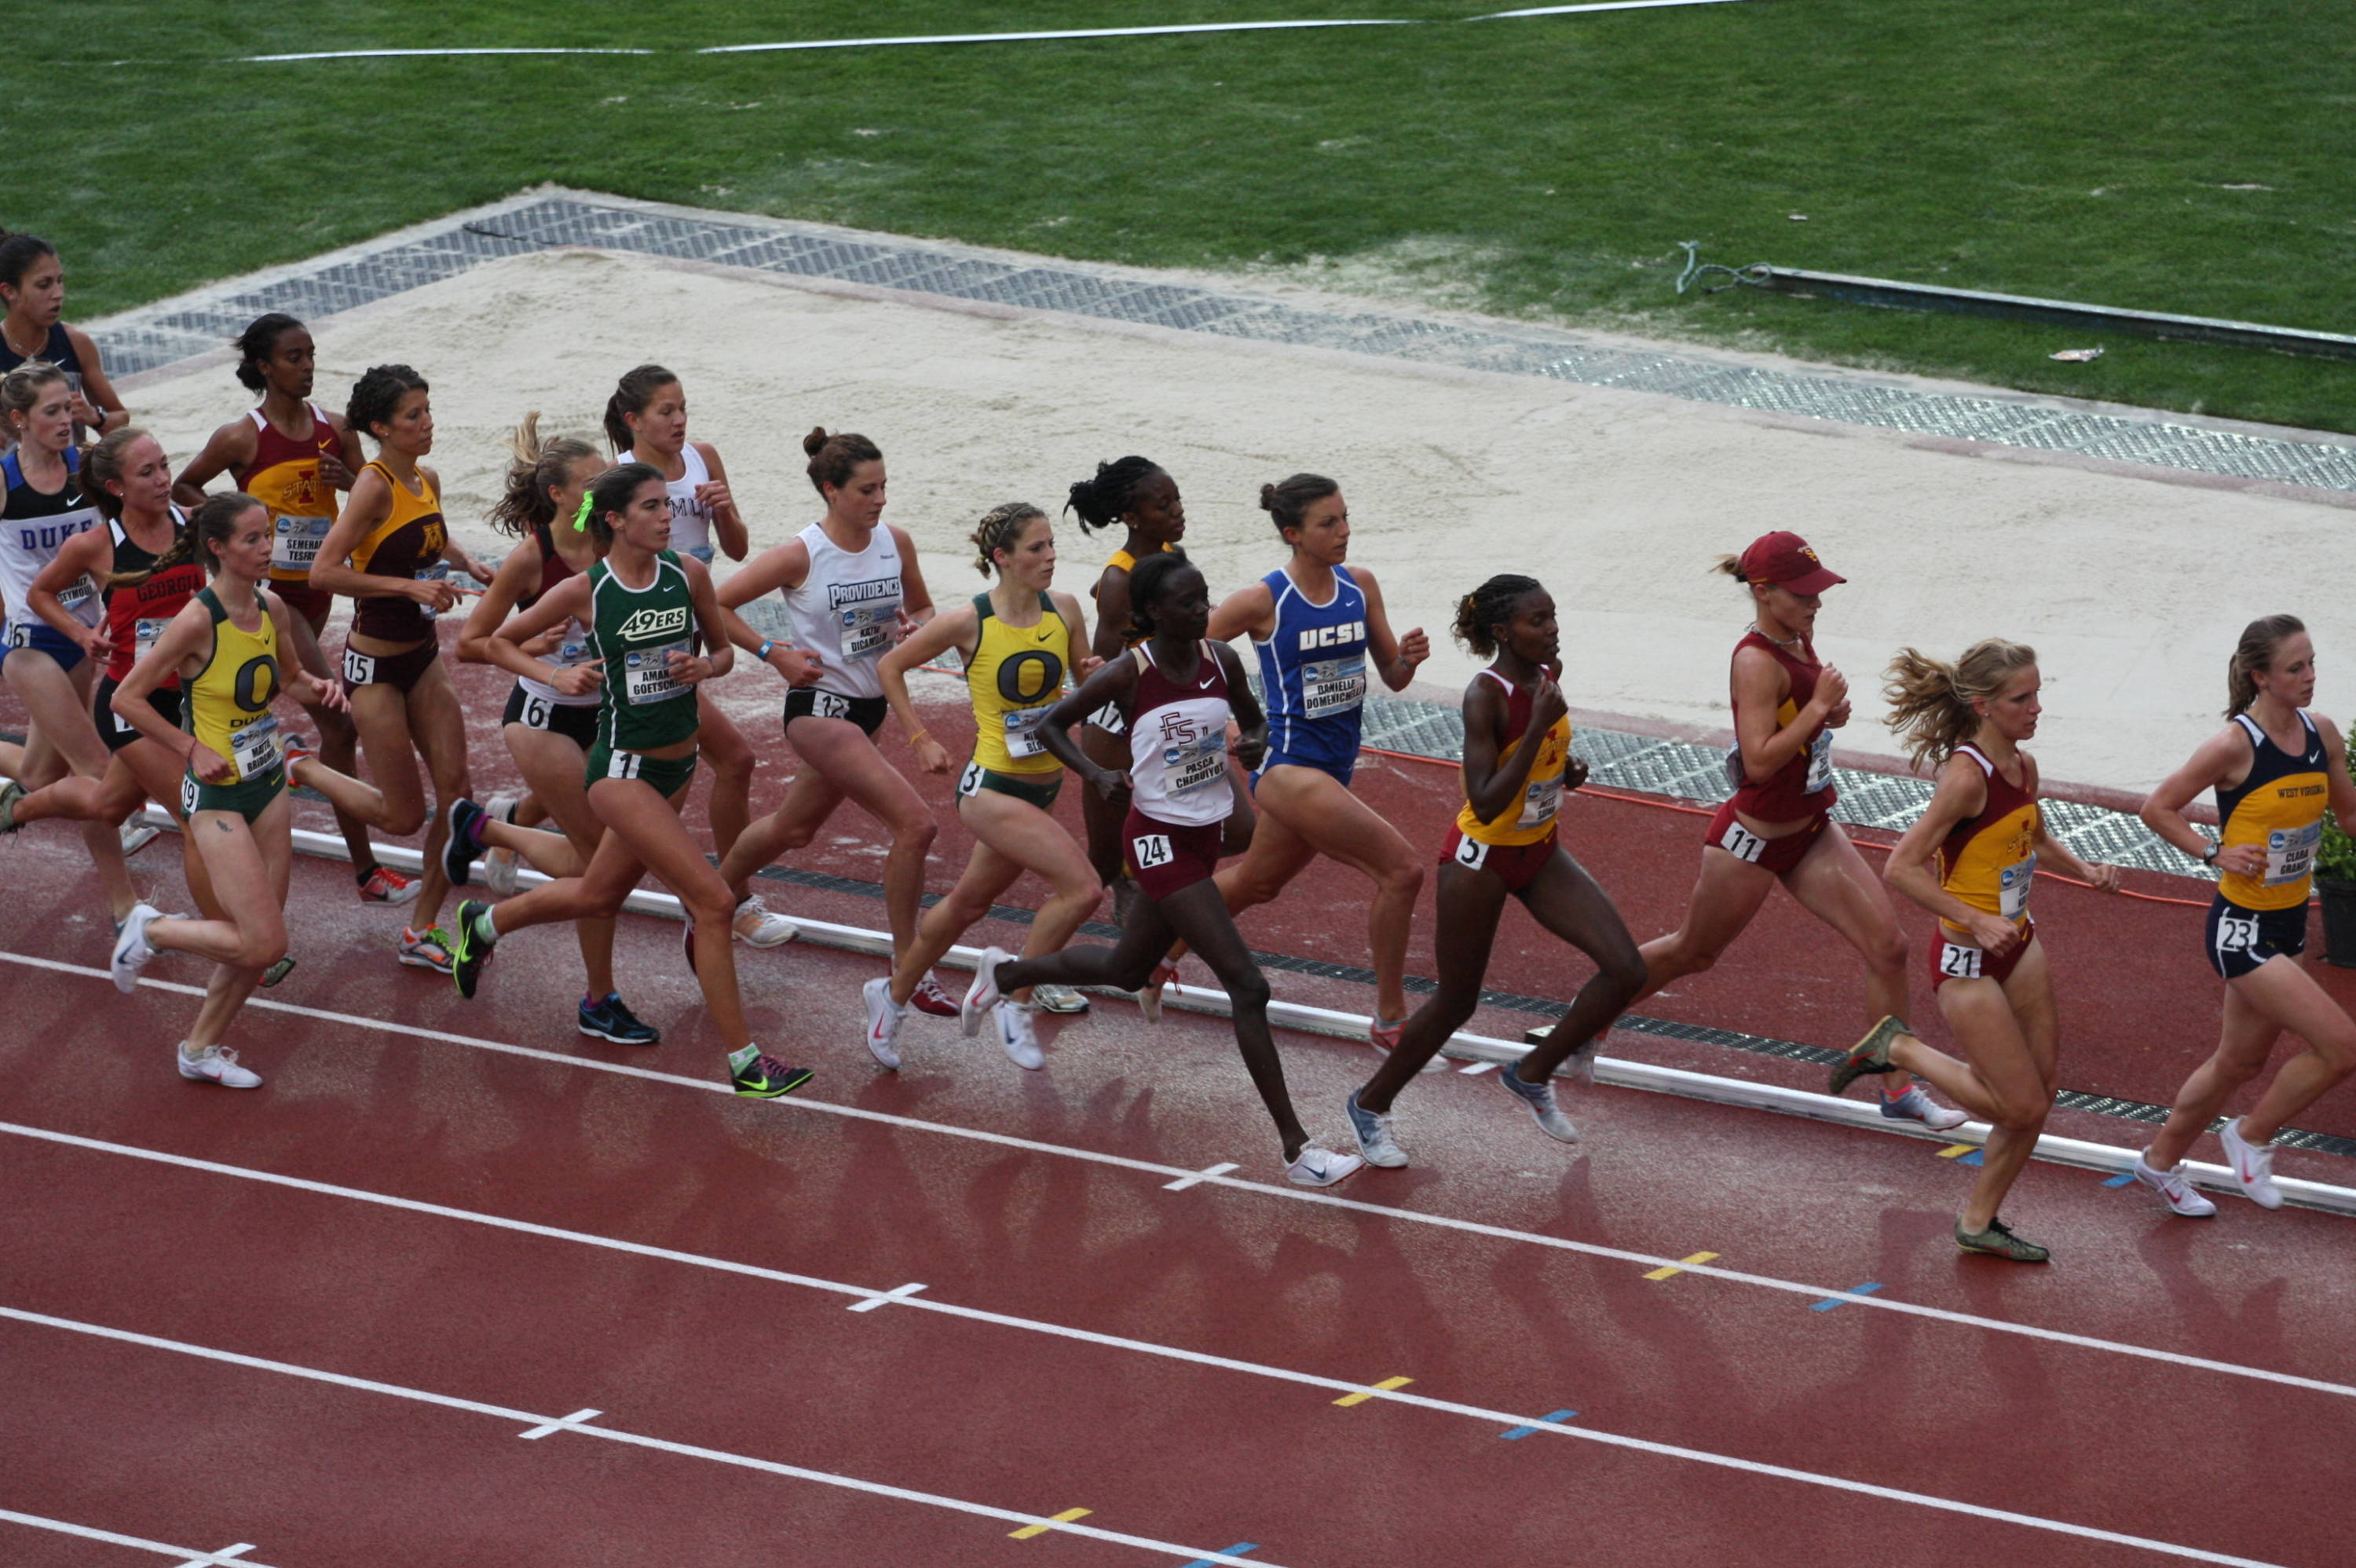 The first day of the 2010 NCAA Outdoor Championships.